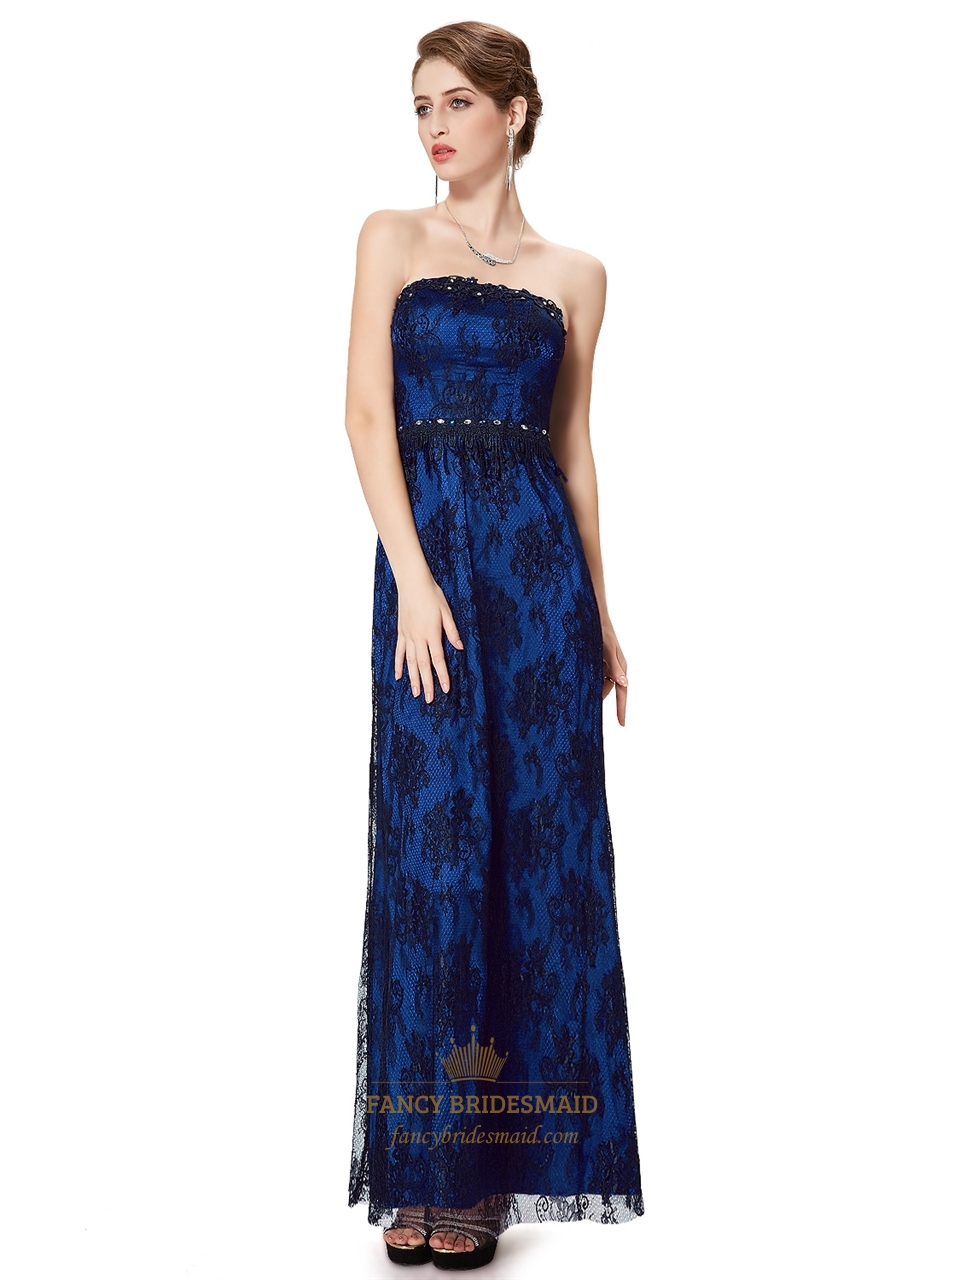 Royal Blue And Black Prom Dress | Fancy Bridesmaid Dresses